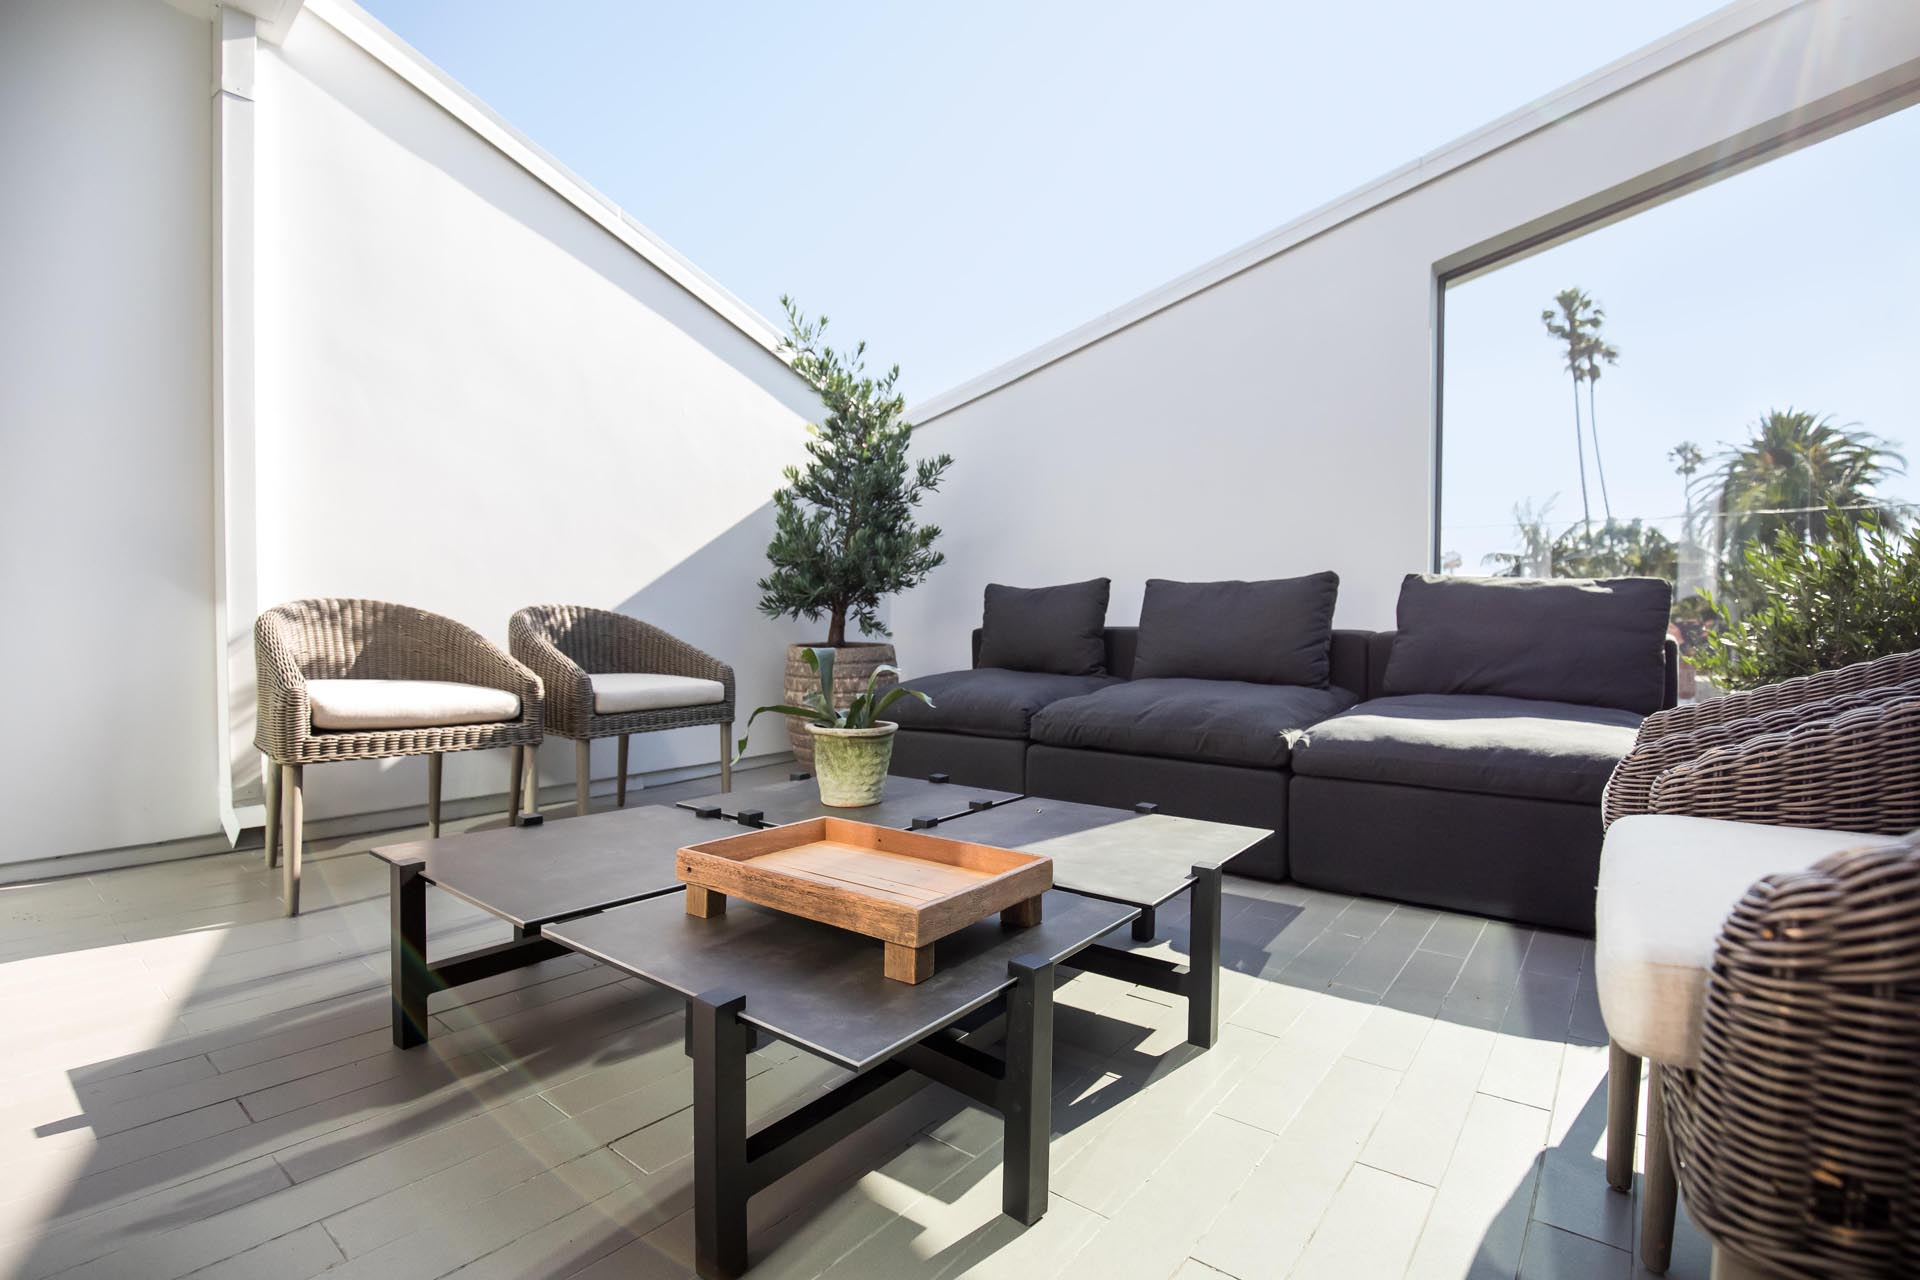 A modern terrace with a sofa, coffee table, and armchairs.